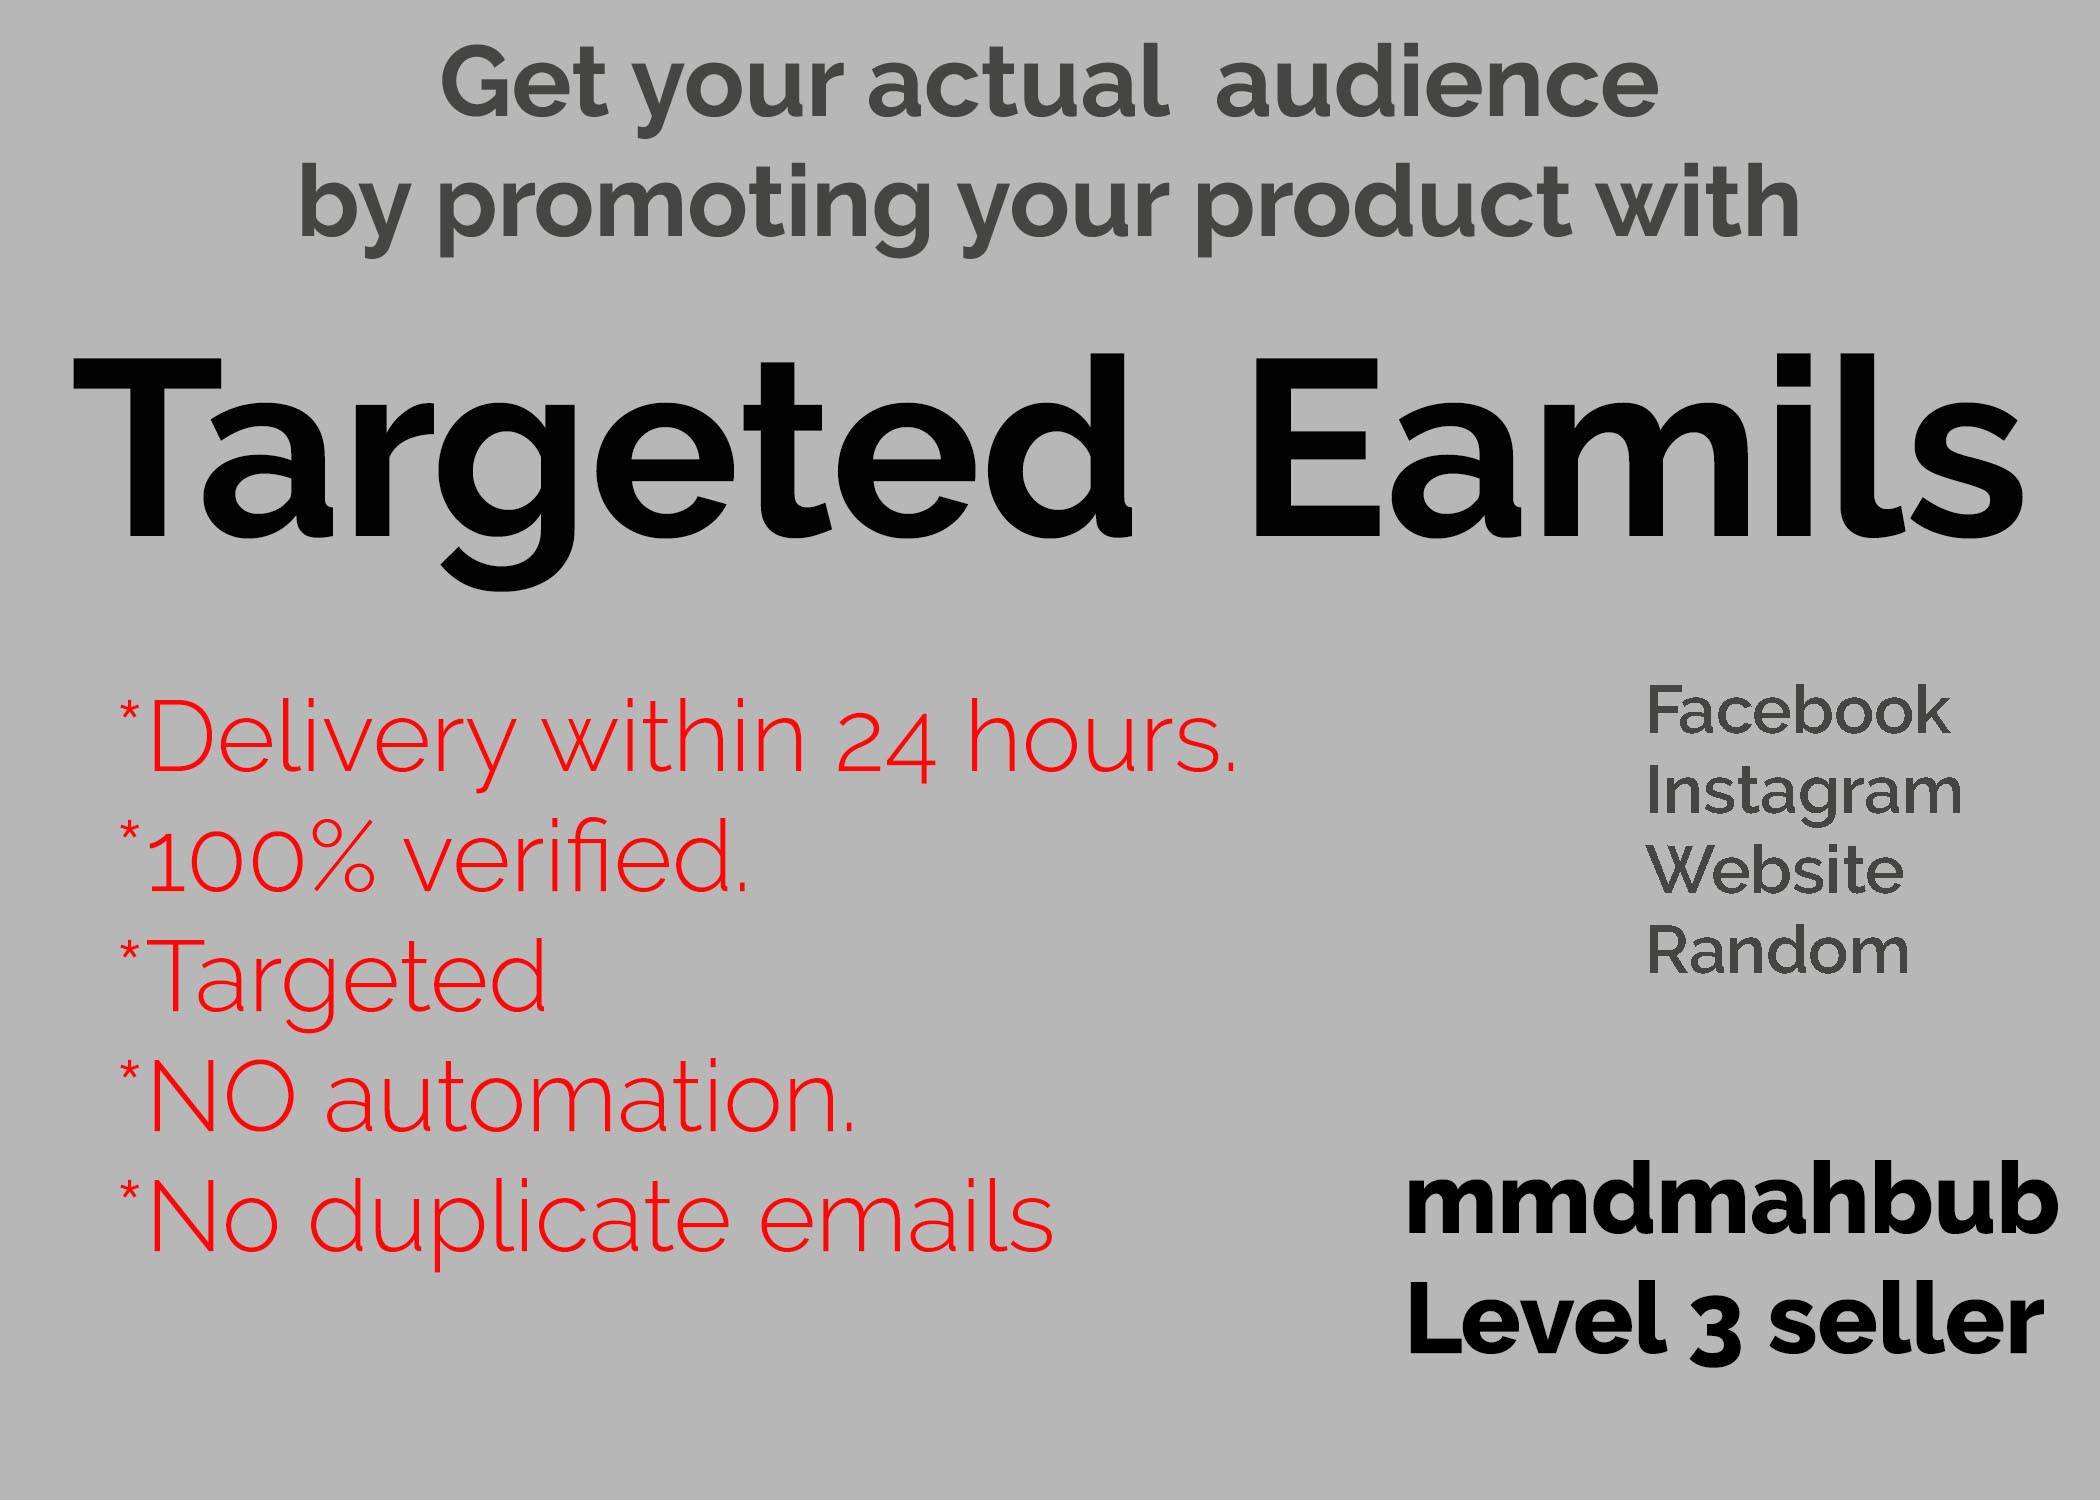 2,000 targeted emails for your product